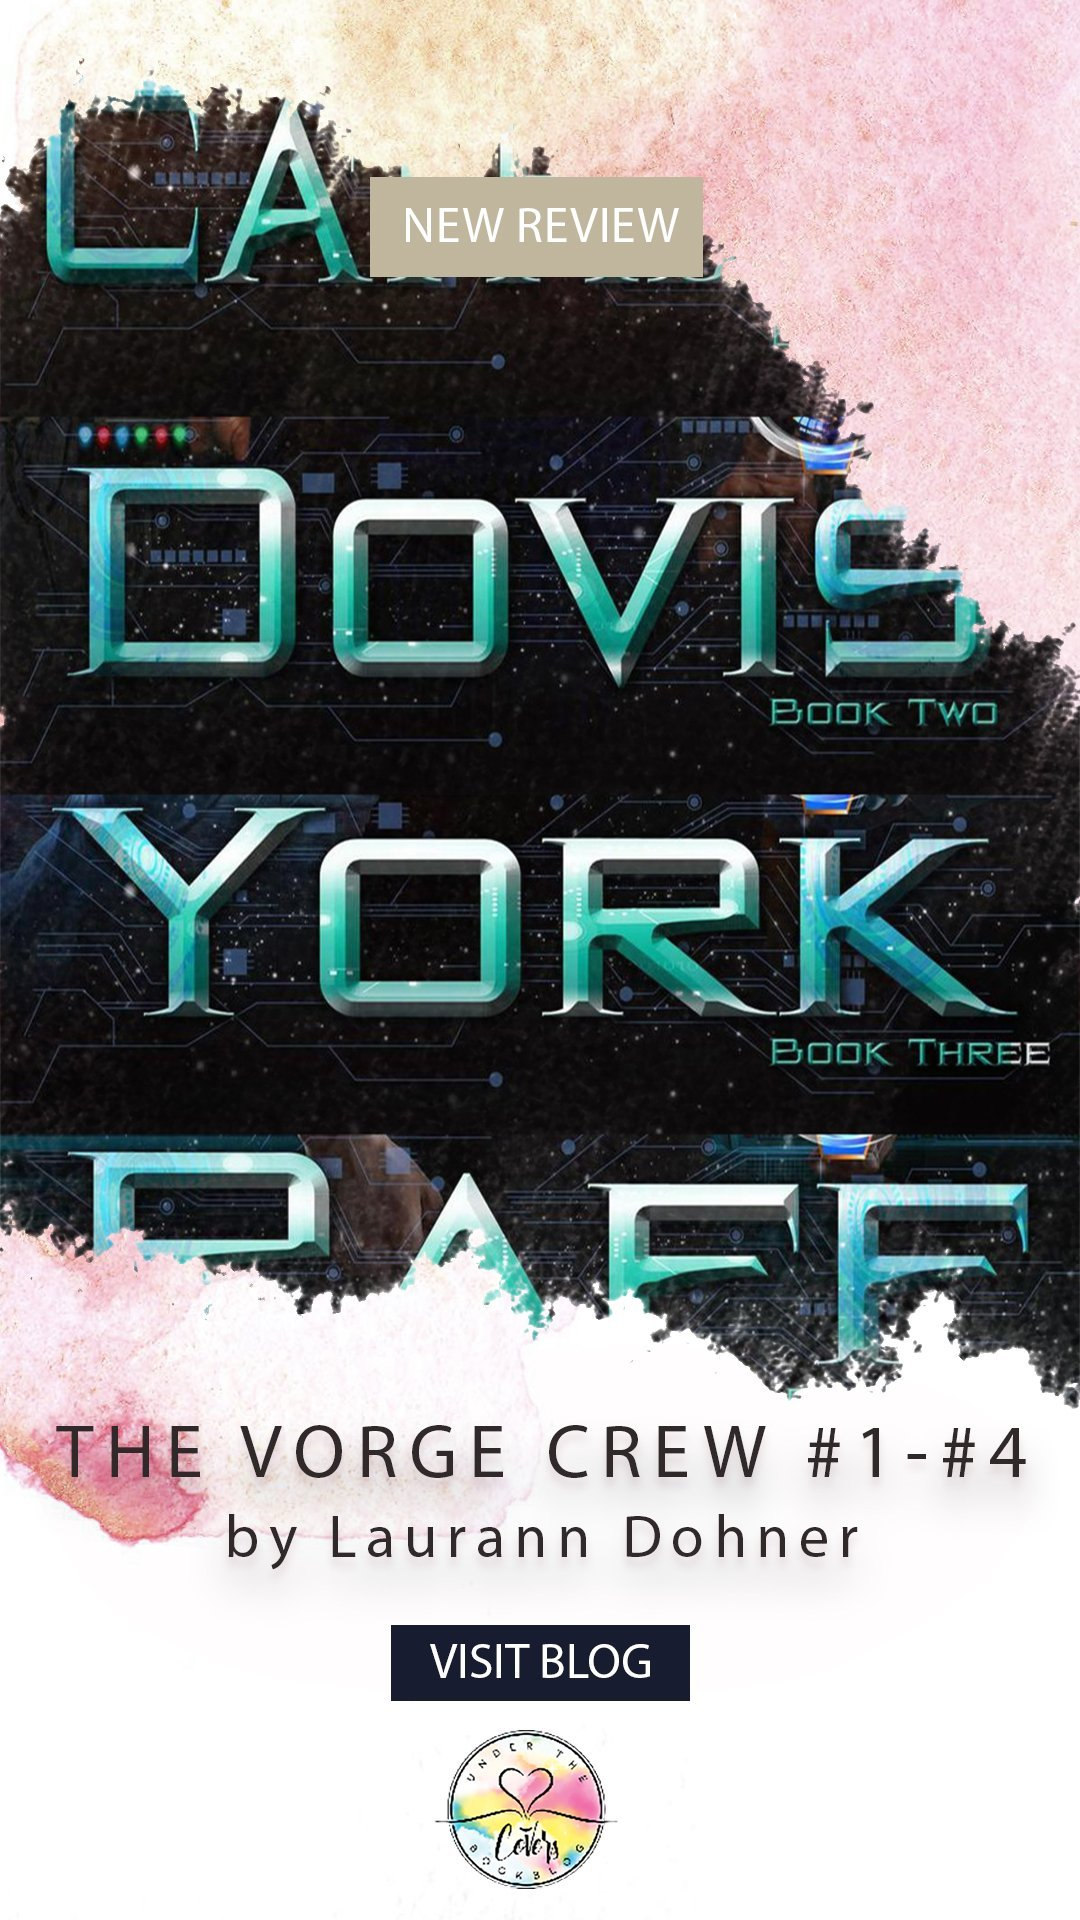 Review: The Vorge Crew #1-#4 by Laurann Dohner